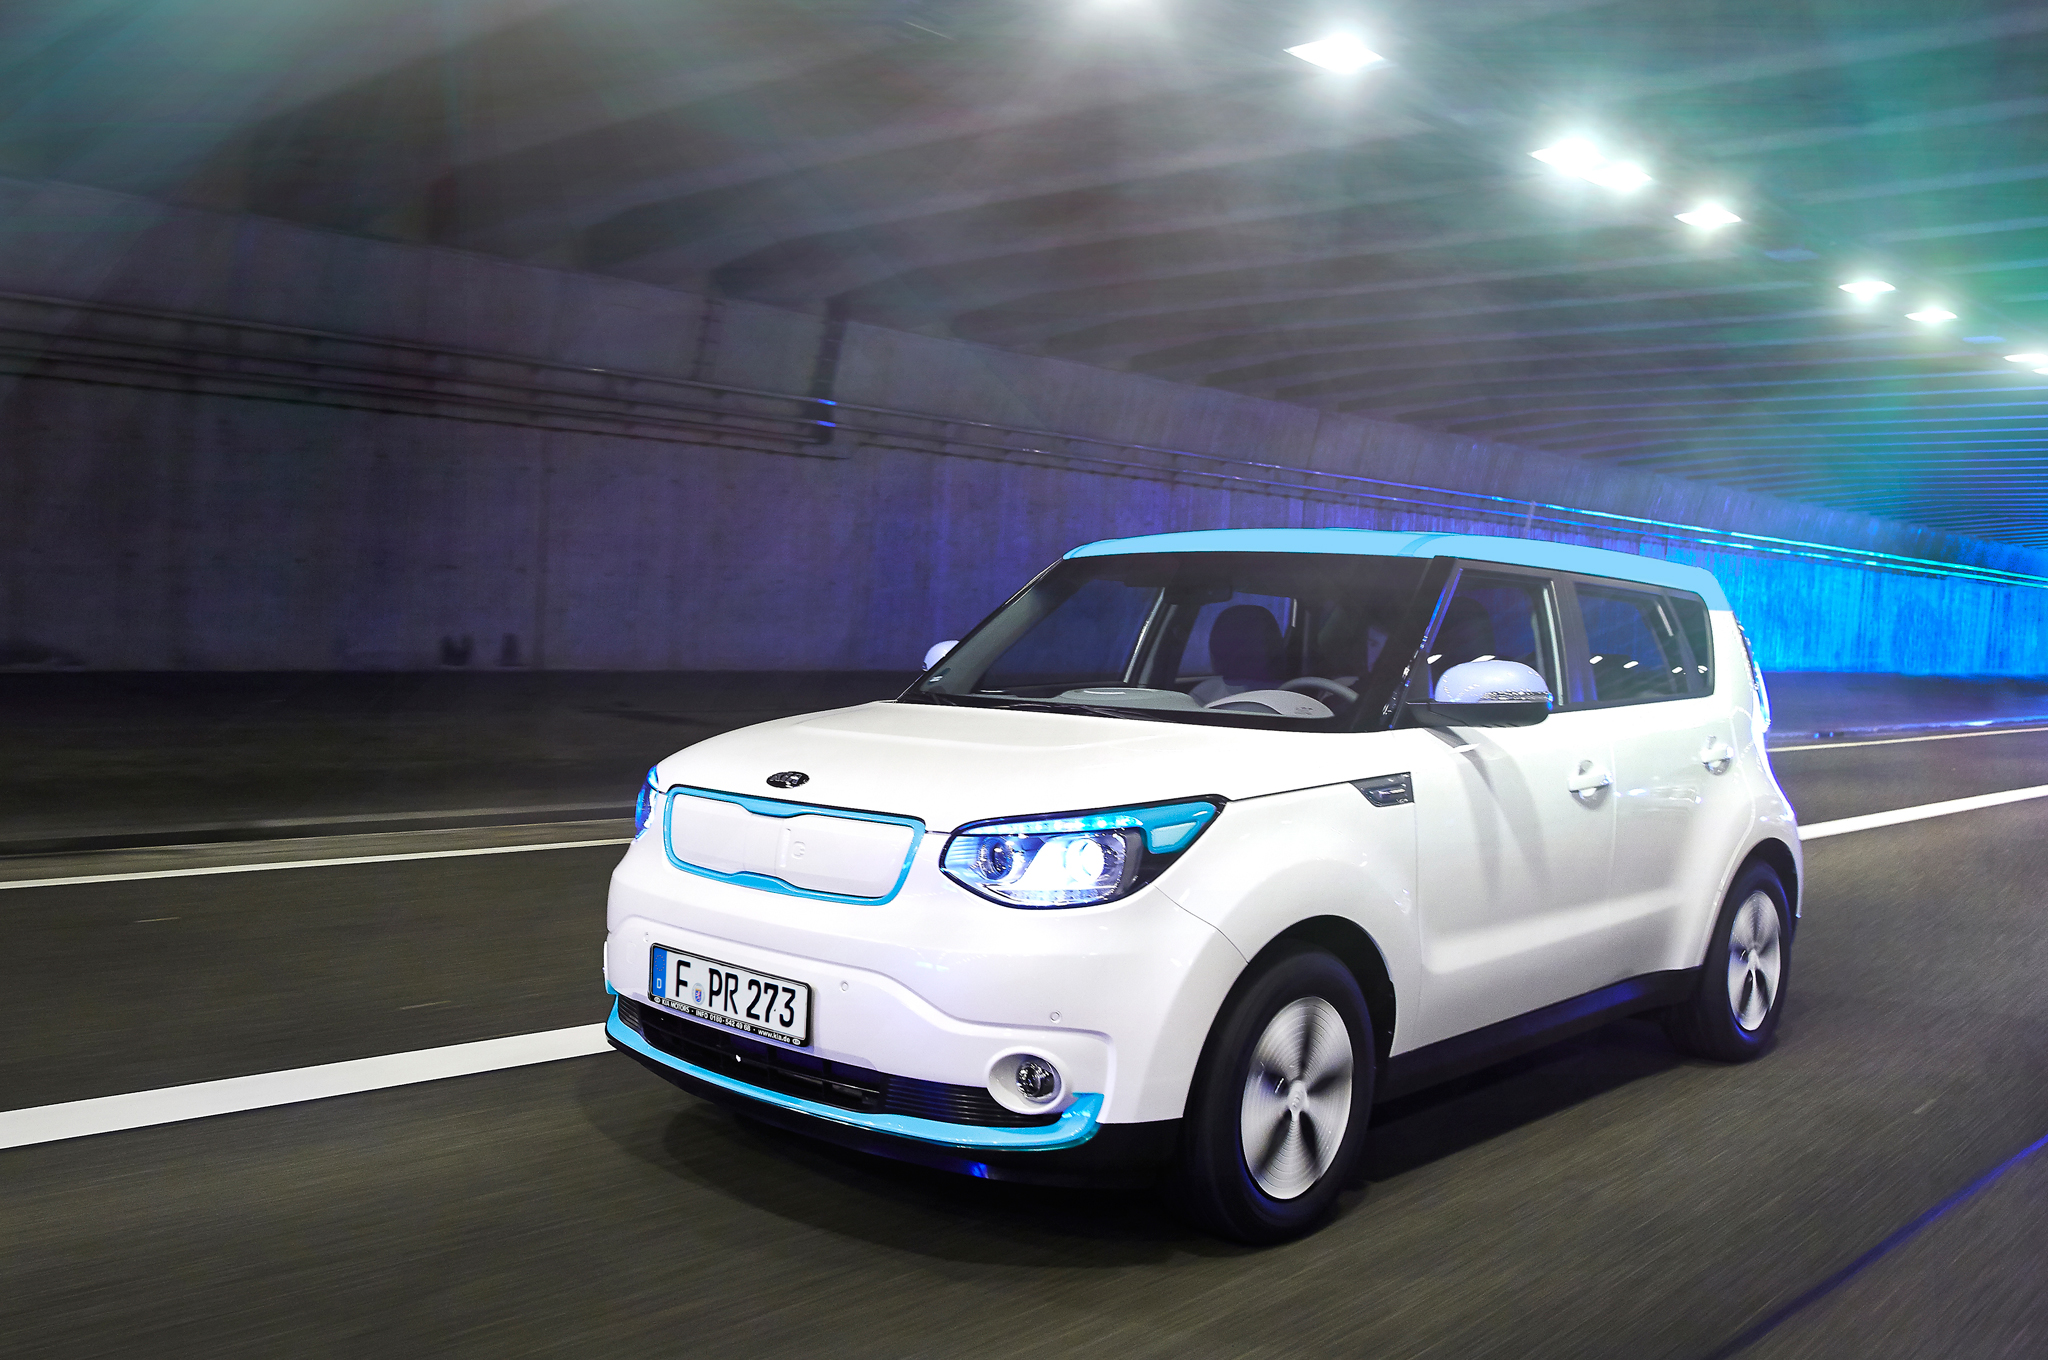 Electrifying Lease a 2015 Kia Soul EV for $249 a Month Motor Trend